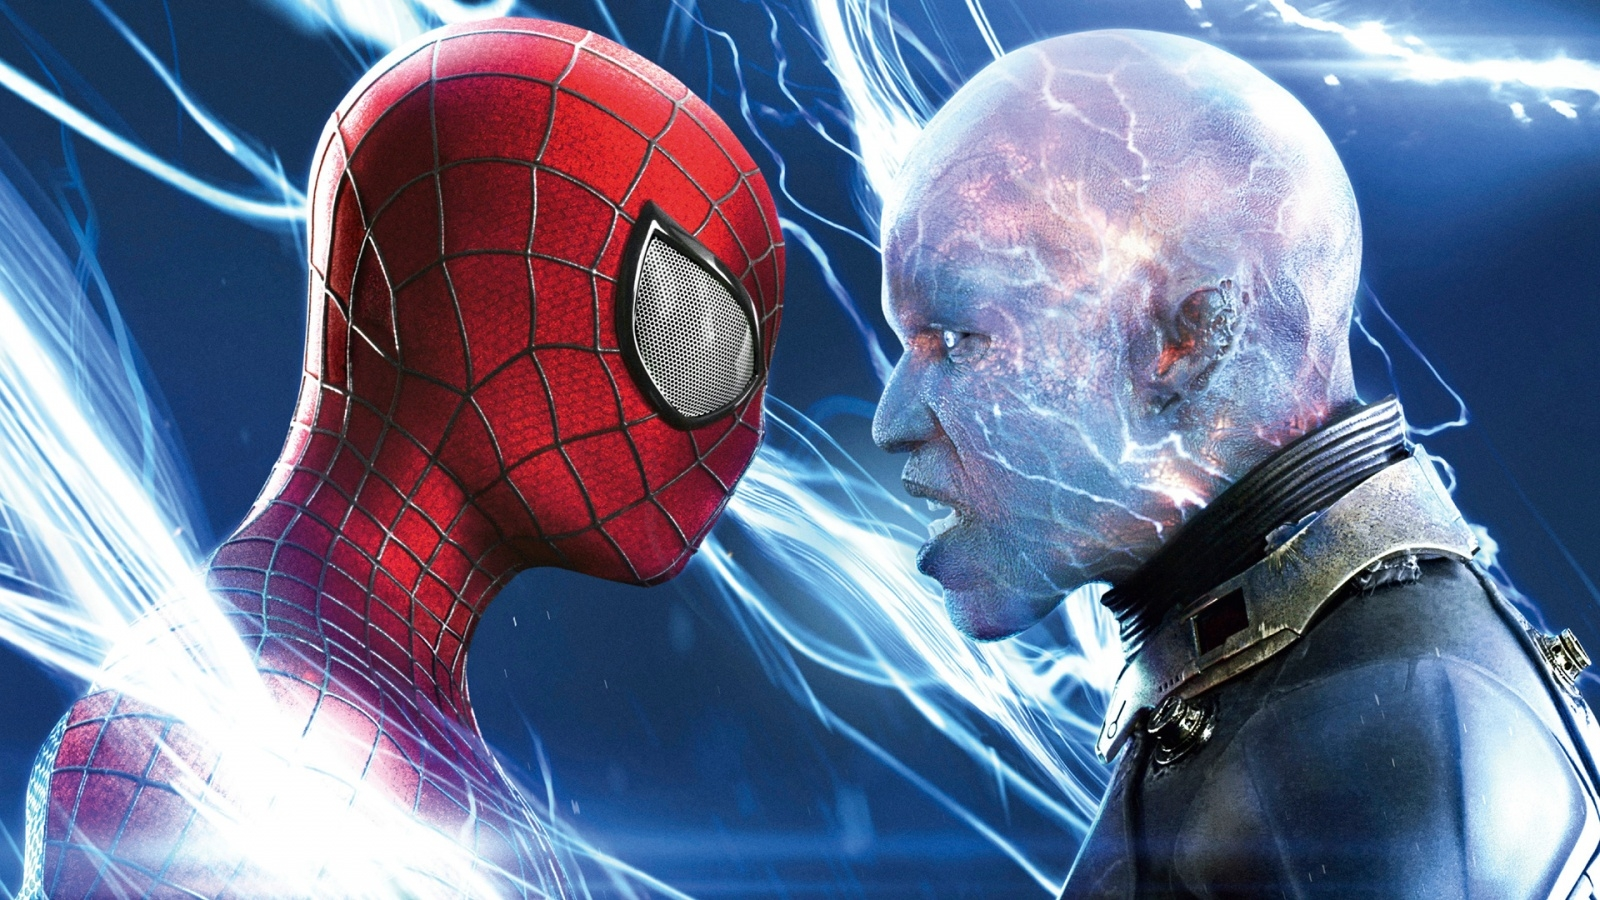 The Amazing Spider-Man 2: Rise of Electro Trailer